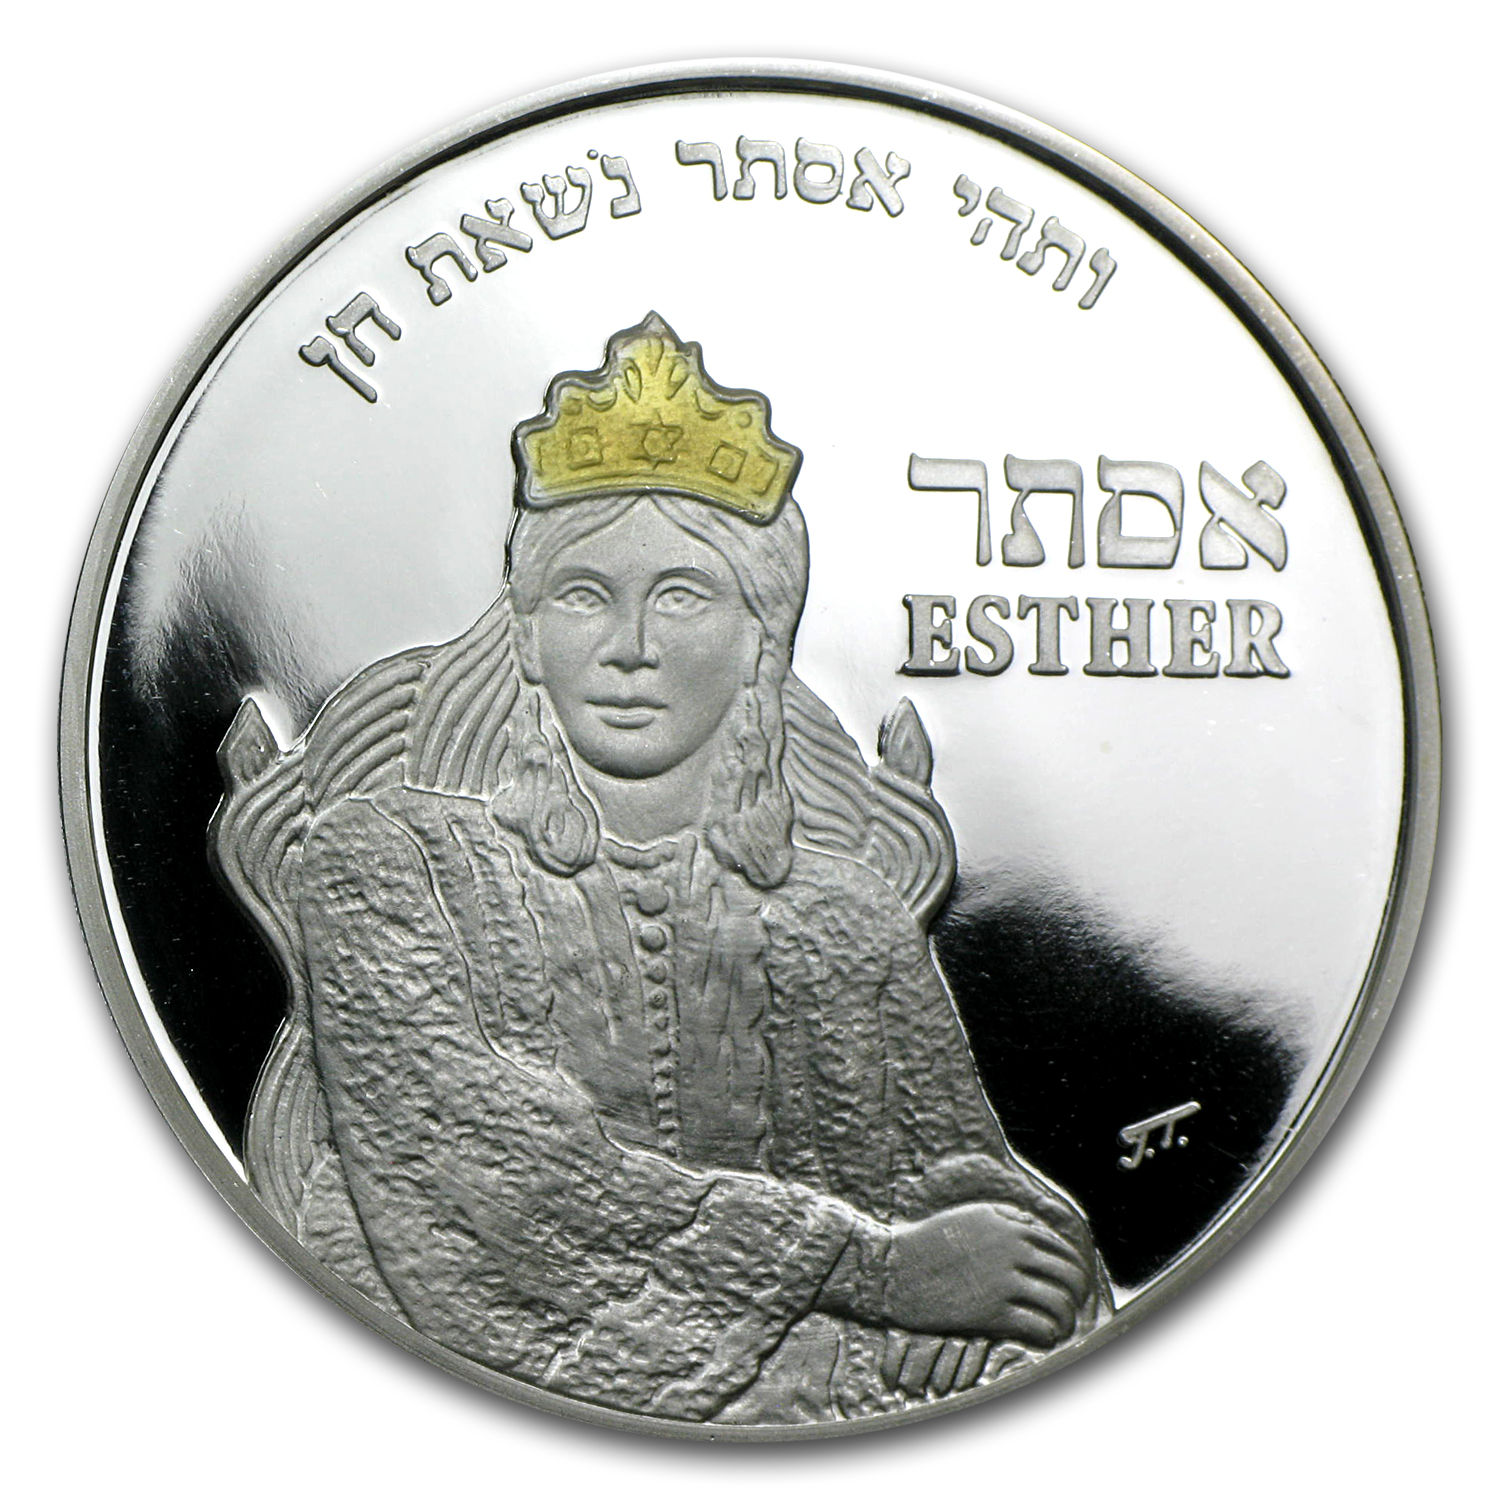 2011 Israel Queen Esther Proof Silver Medal ASW .643